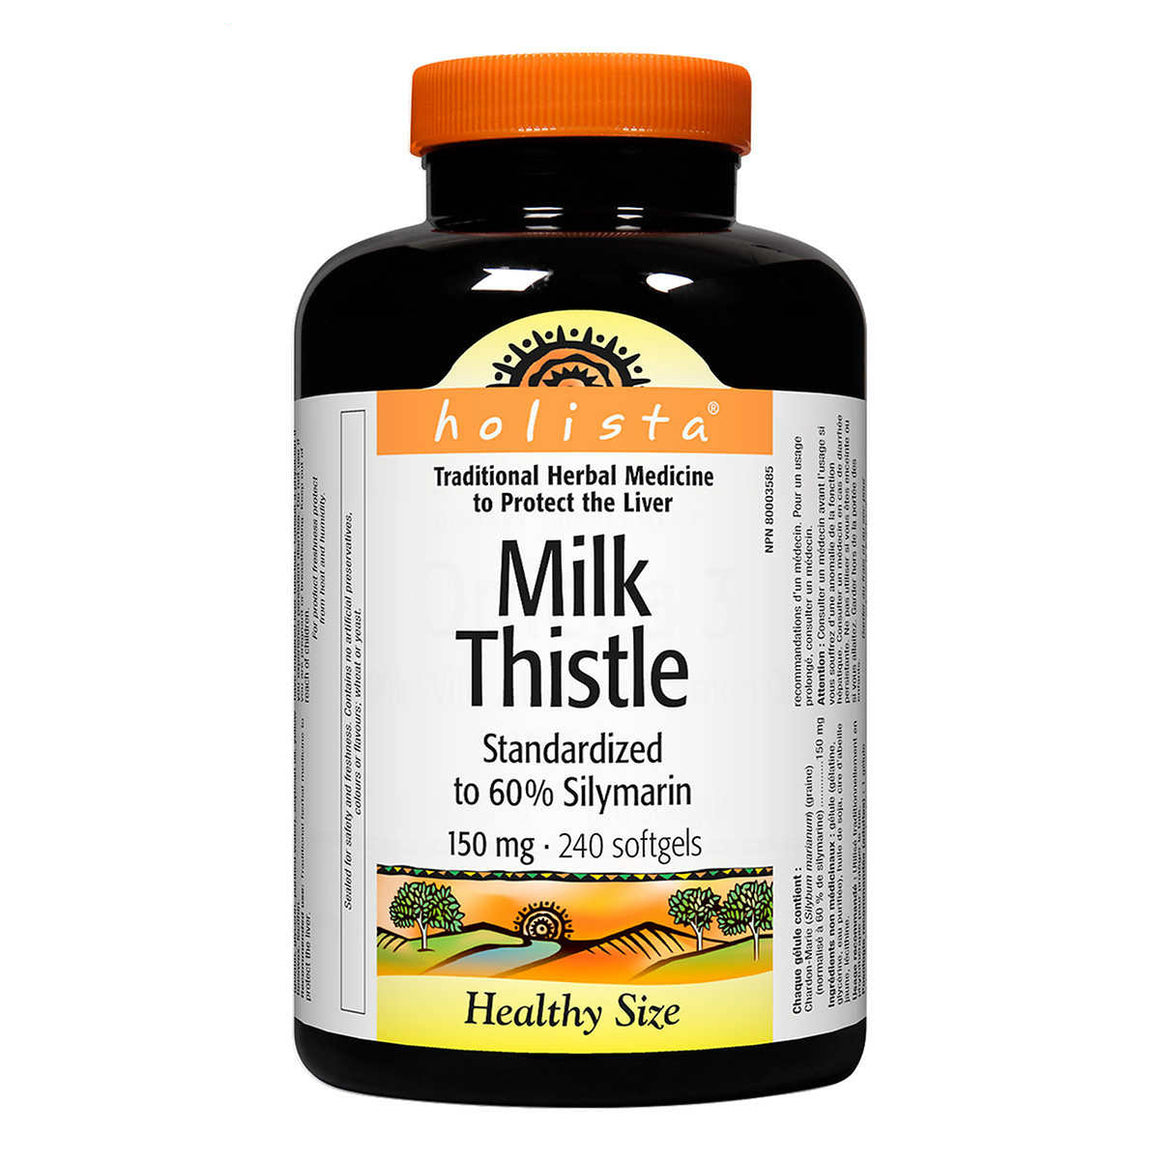 Holista Milk Thistle, 护肝片, 150mg, 240 Softgels